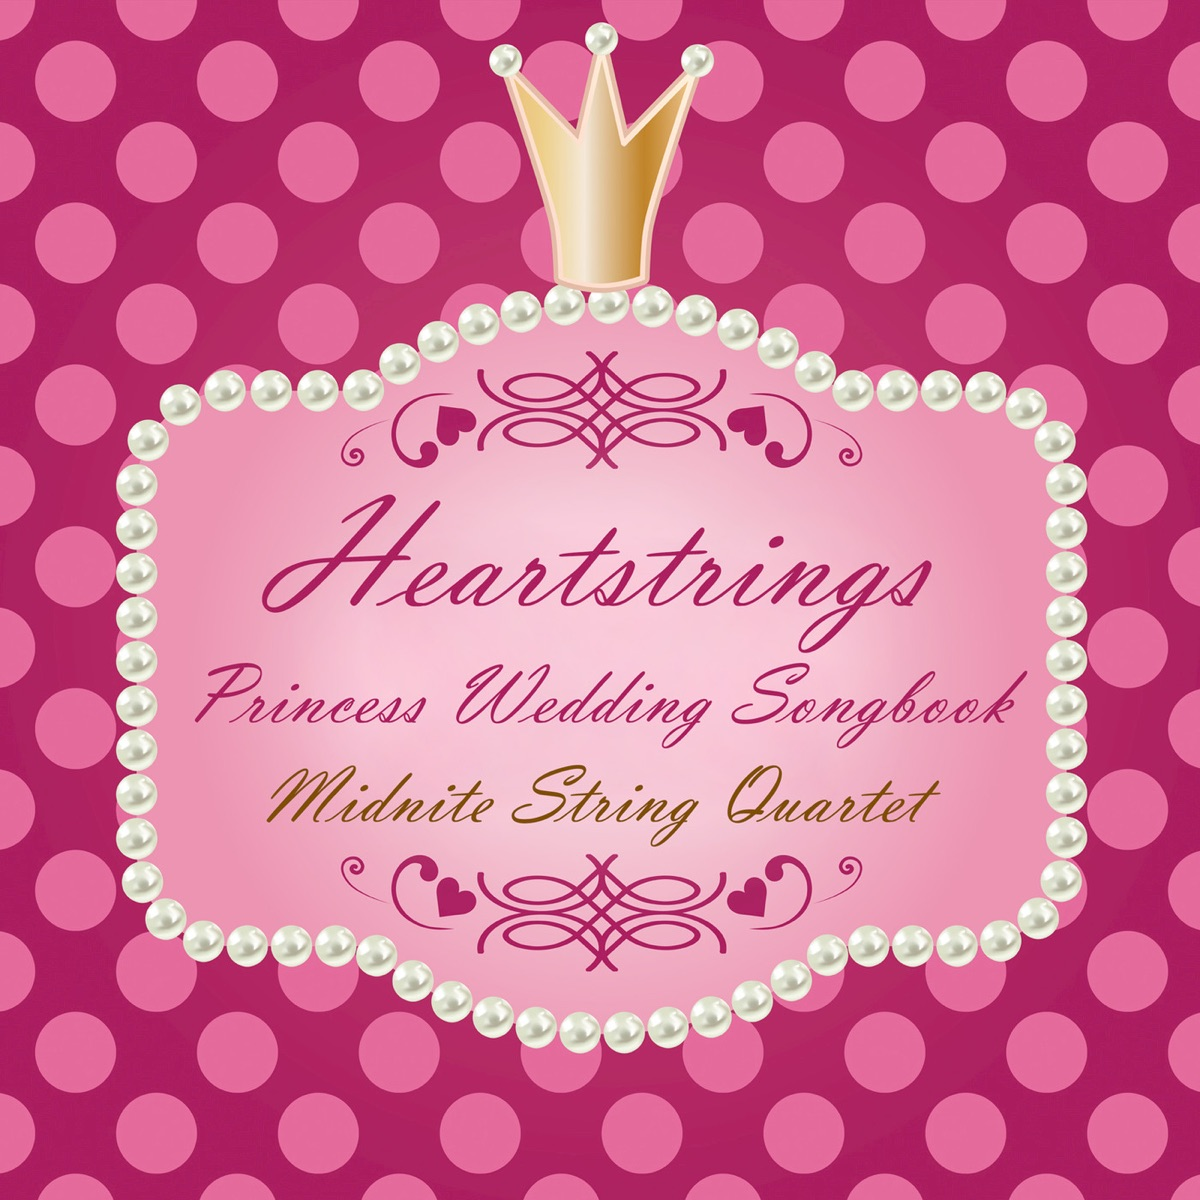 Heartstrings Princess Wedding Songbook Midnite String Quartet CD cover